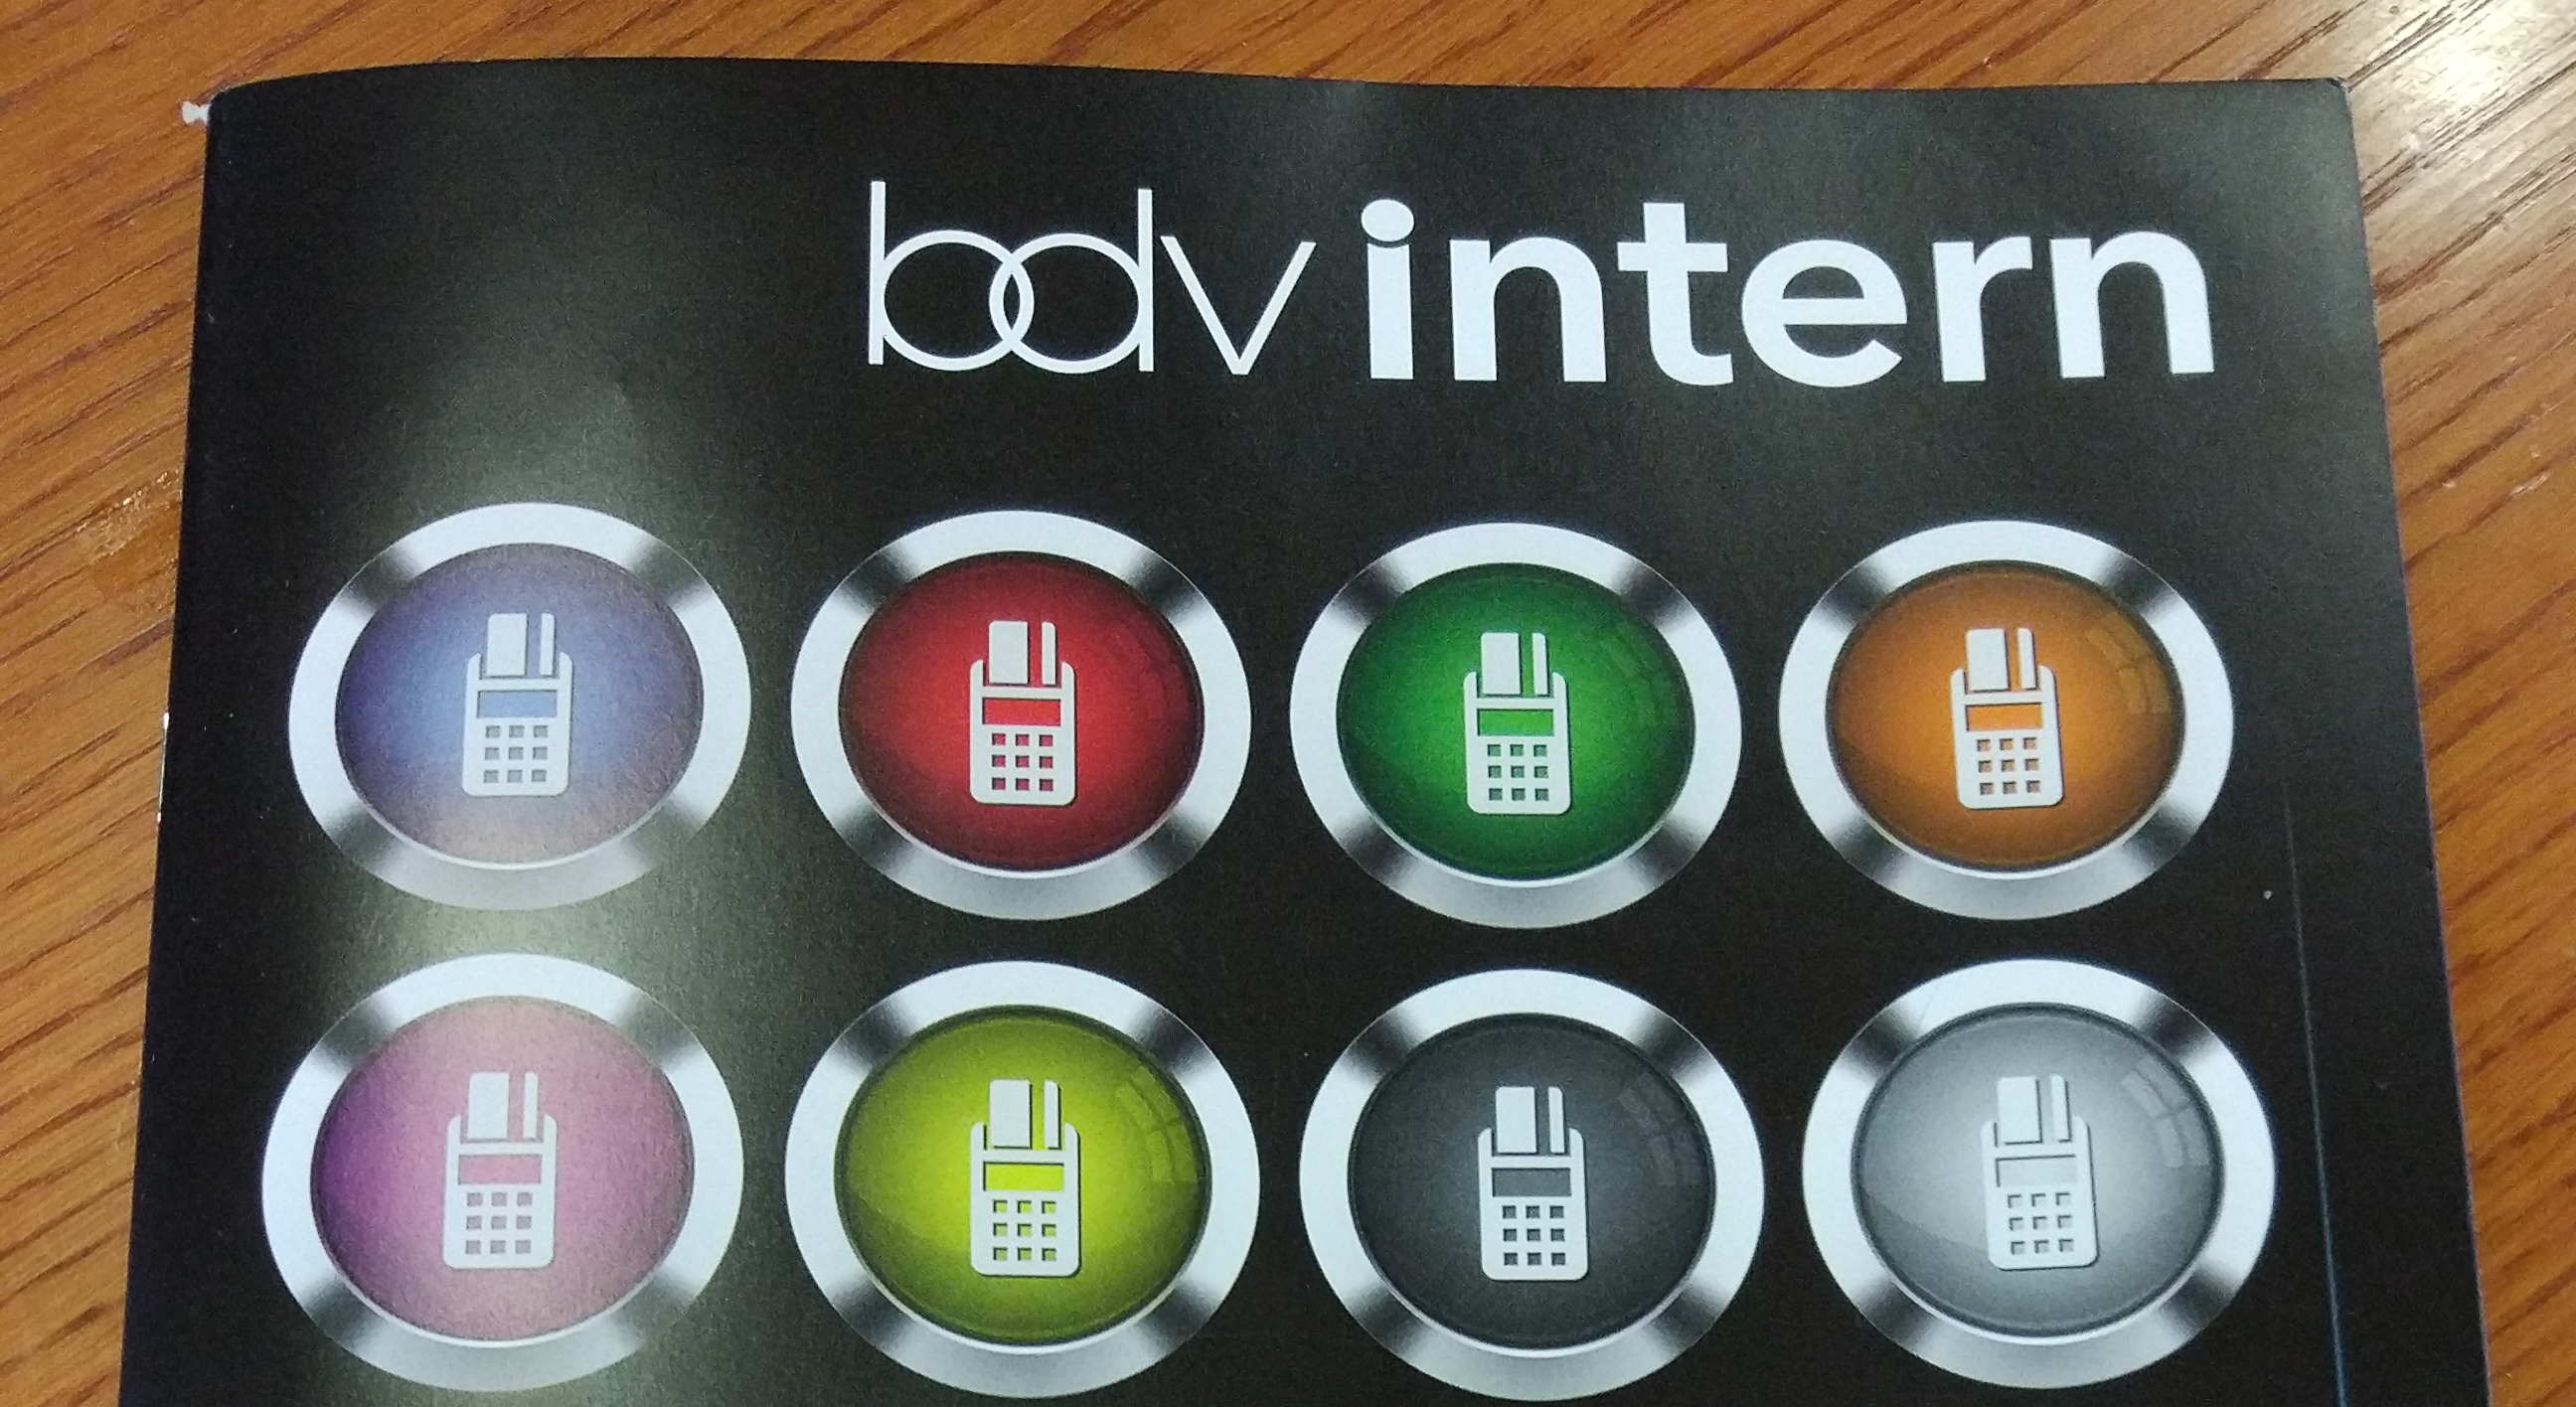 Printbox presented in BDV intern magazine